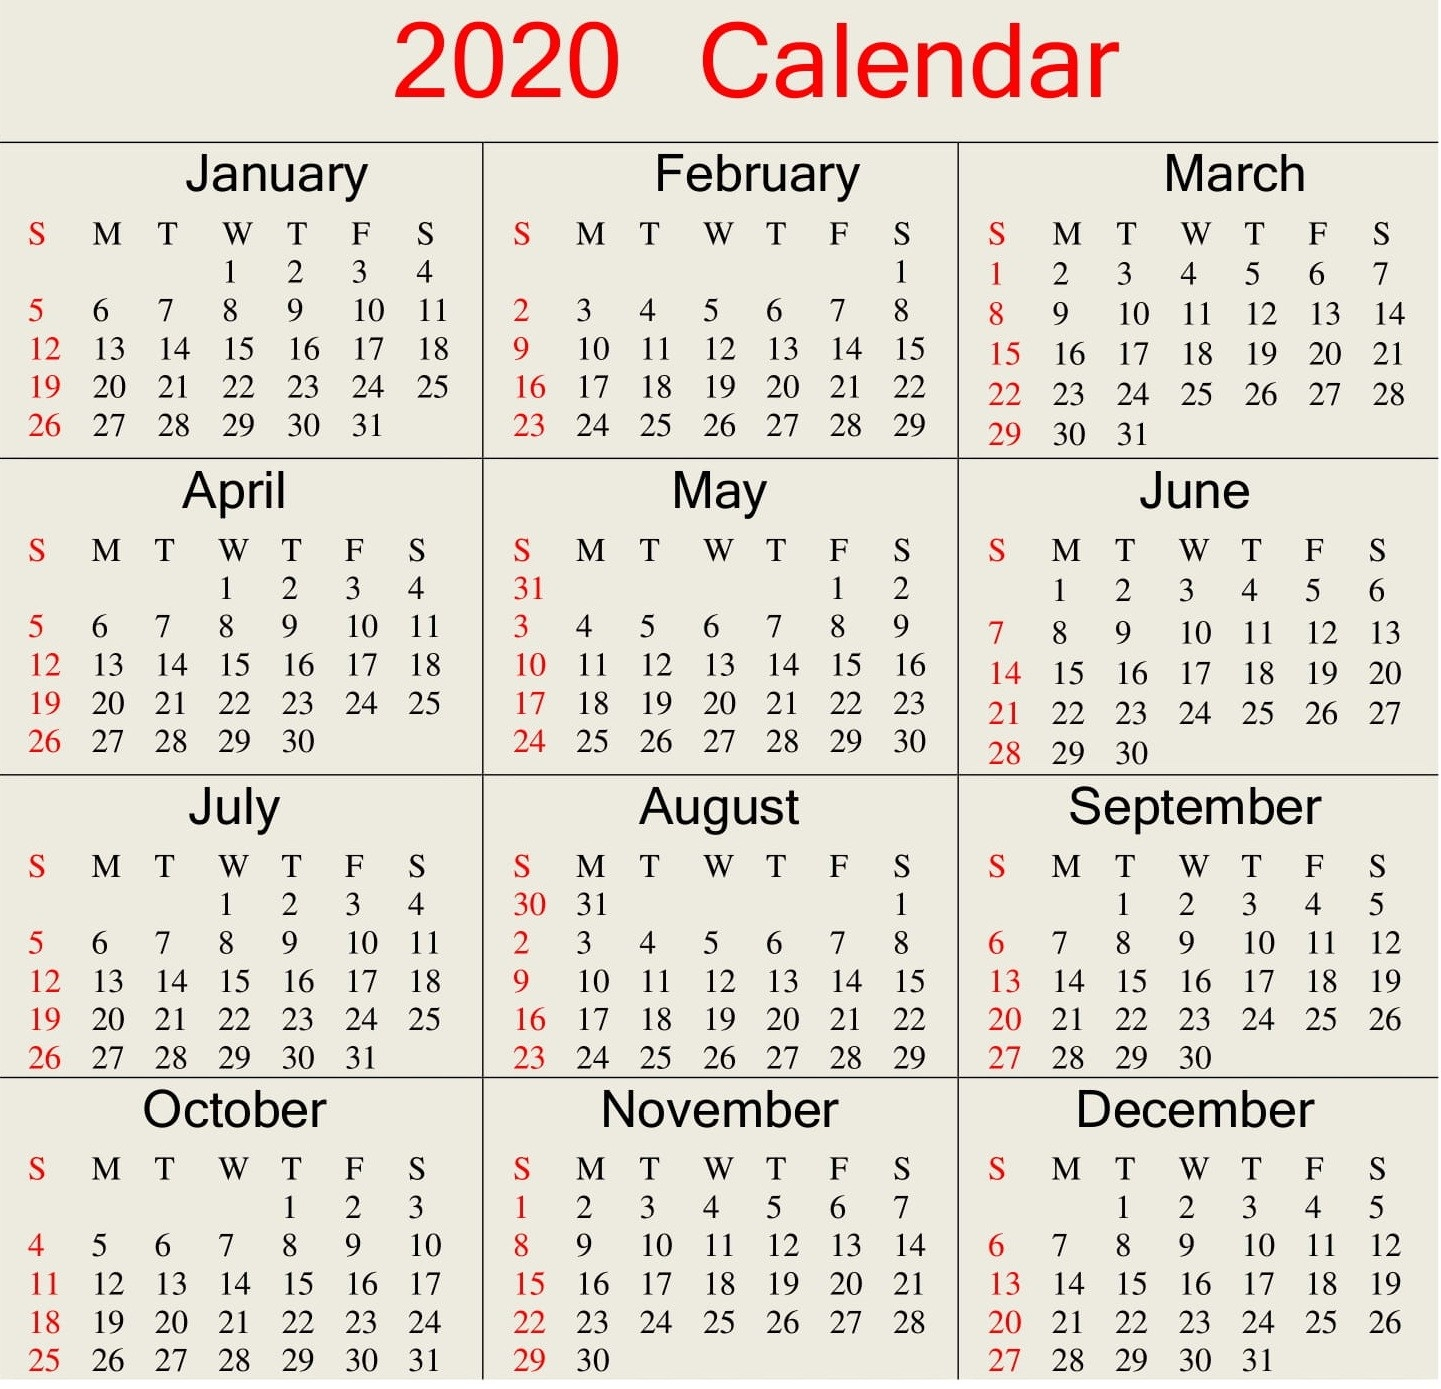 Printable 2020 Calendar Word Document - Latest Printable  365 Day Julian Calendar January